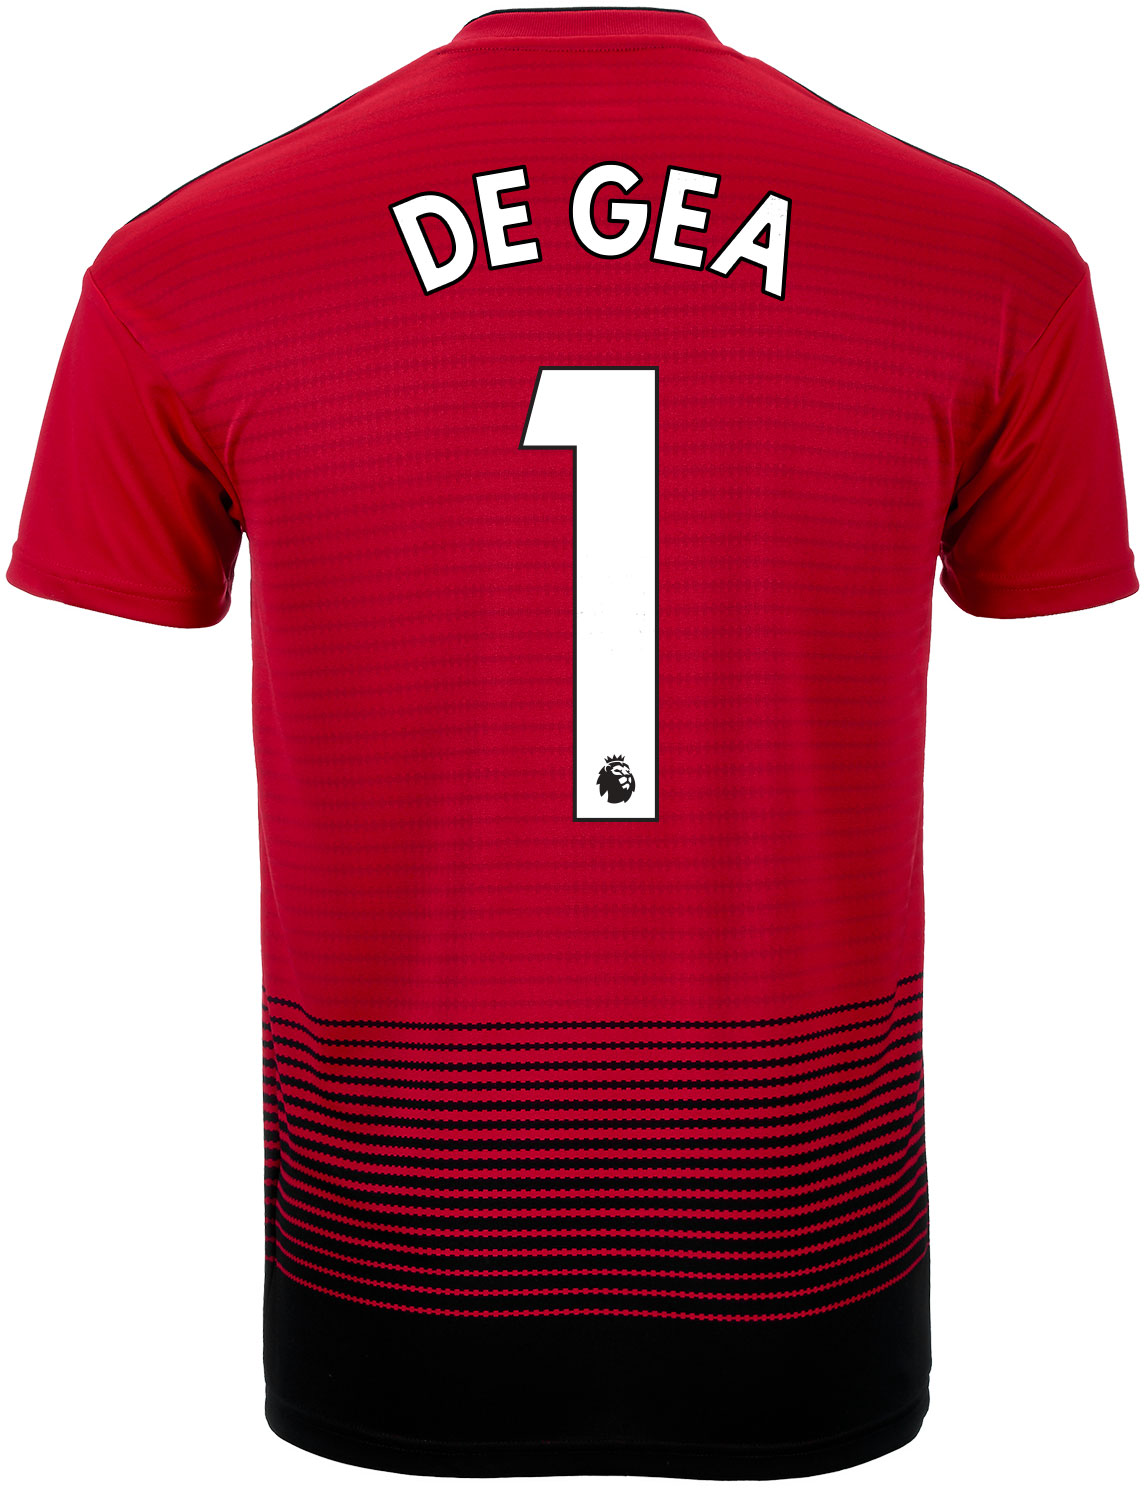 buy popular fe99c 21d06 2018/19 adidas Kids David De Gea Manchester United Home ...